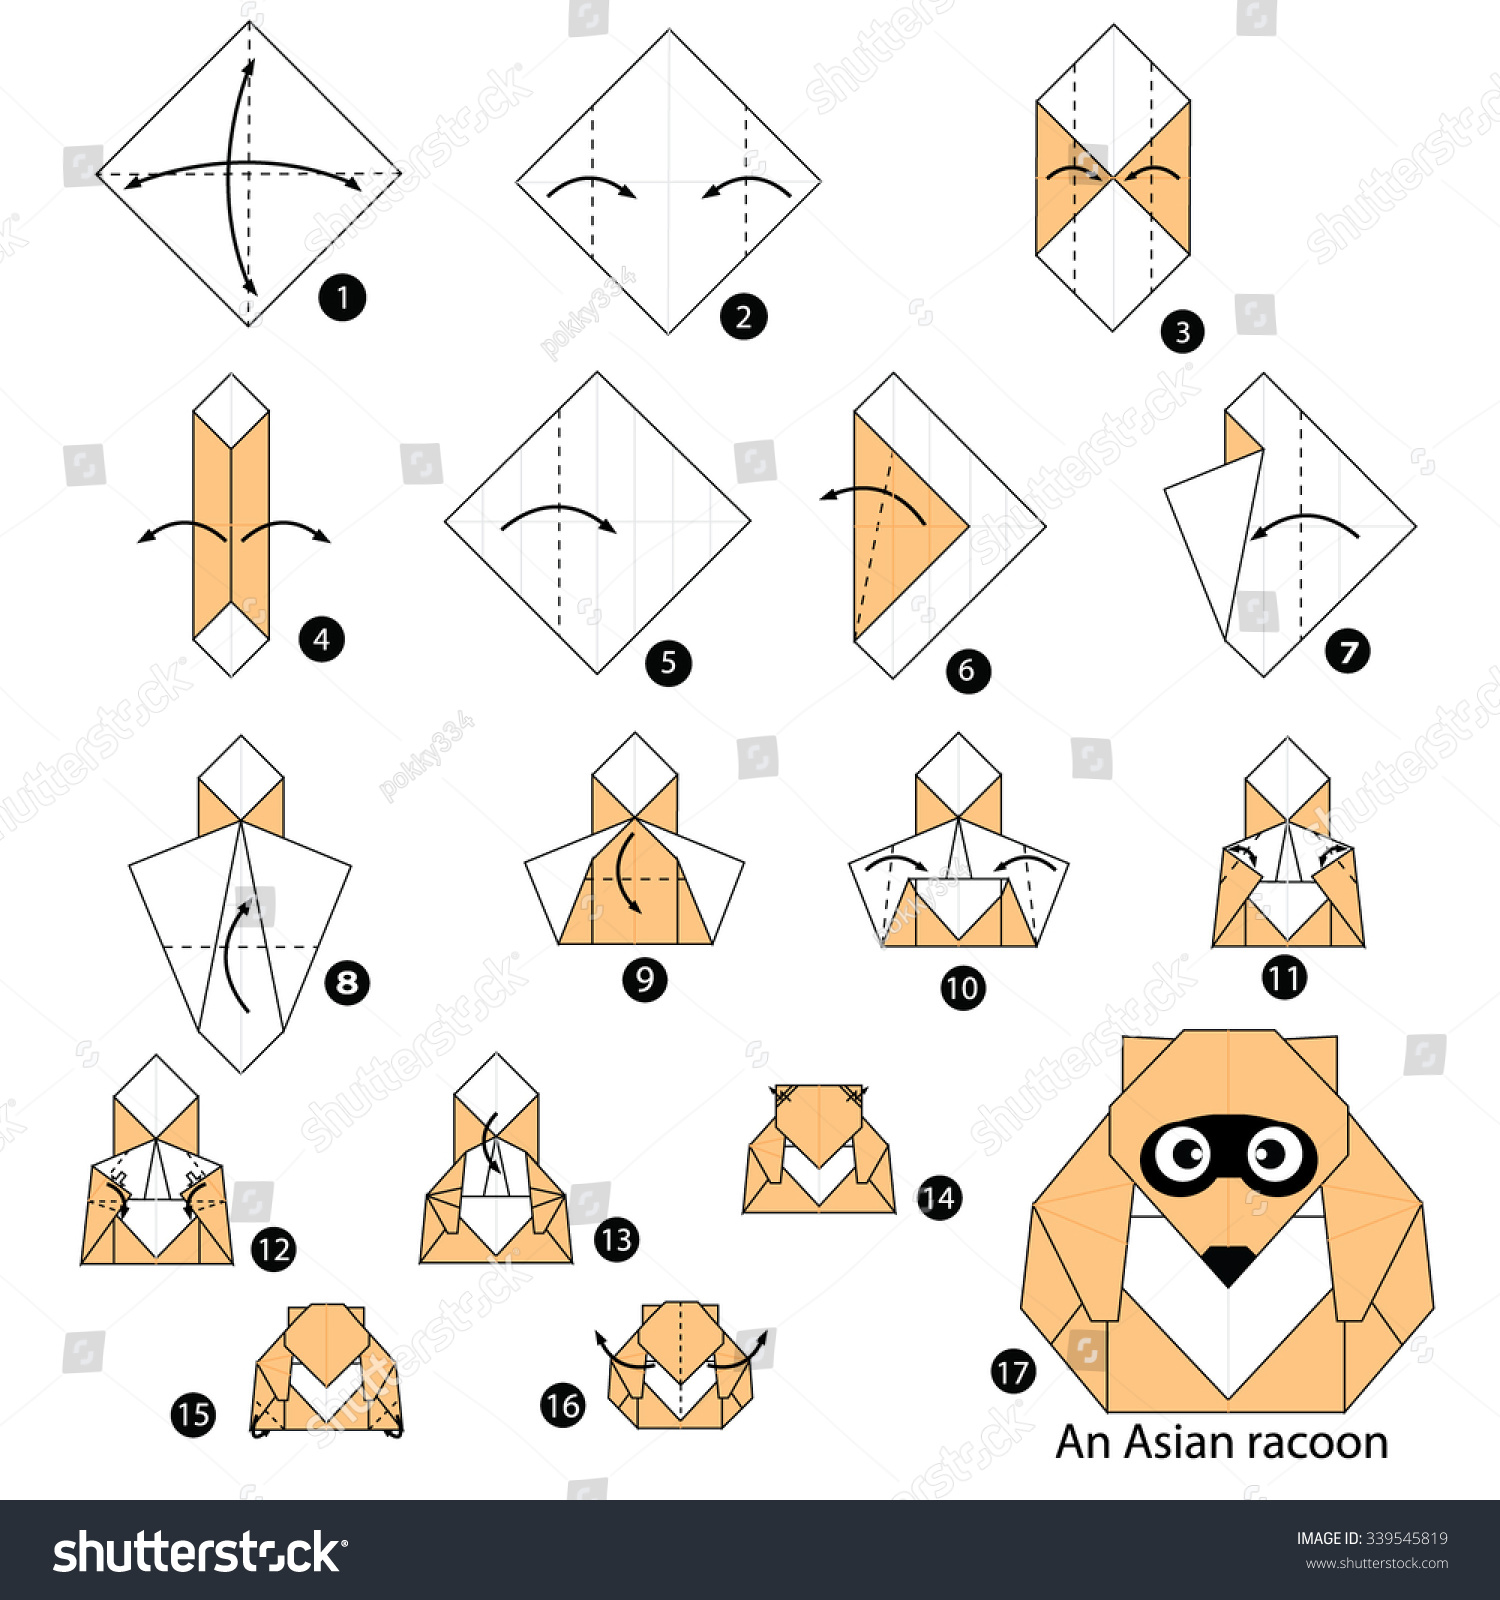 Sensational Step By Step Instructions How To Make Origami An Asian Raccoon Hairstyles For Women Draintrainus